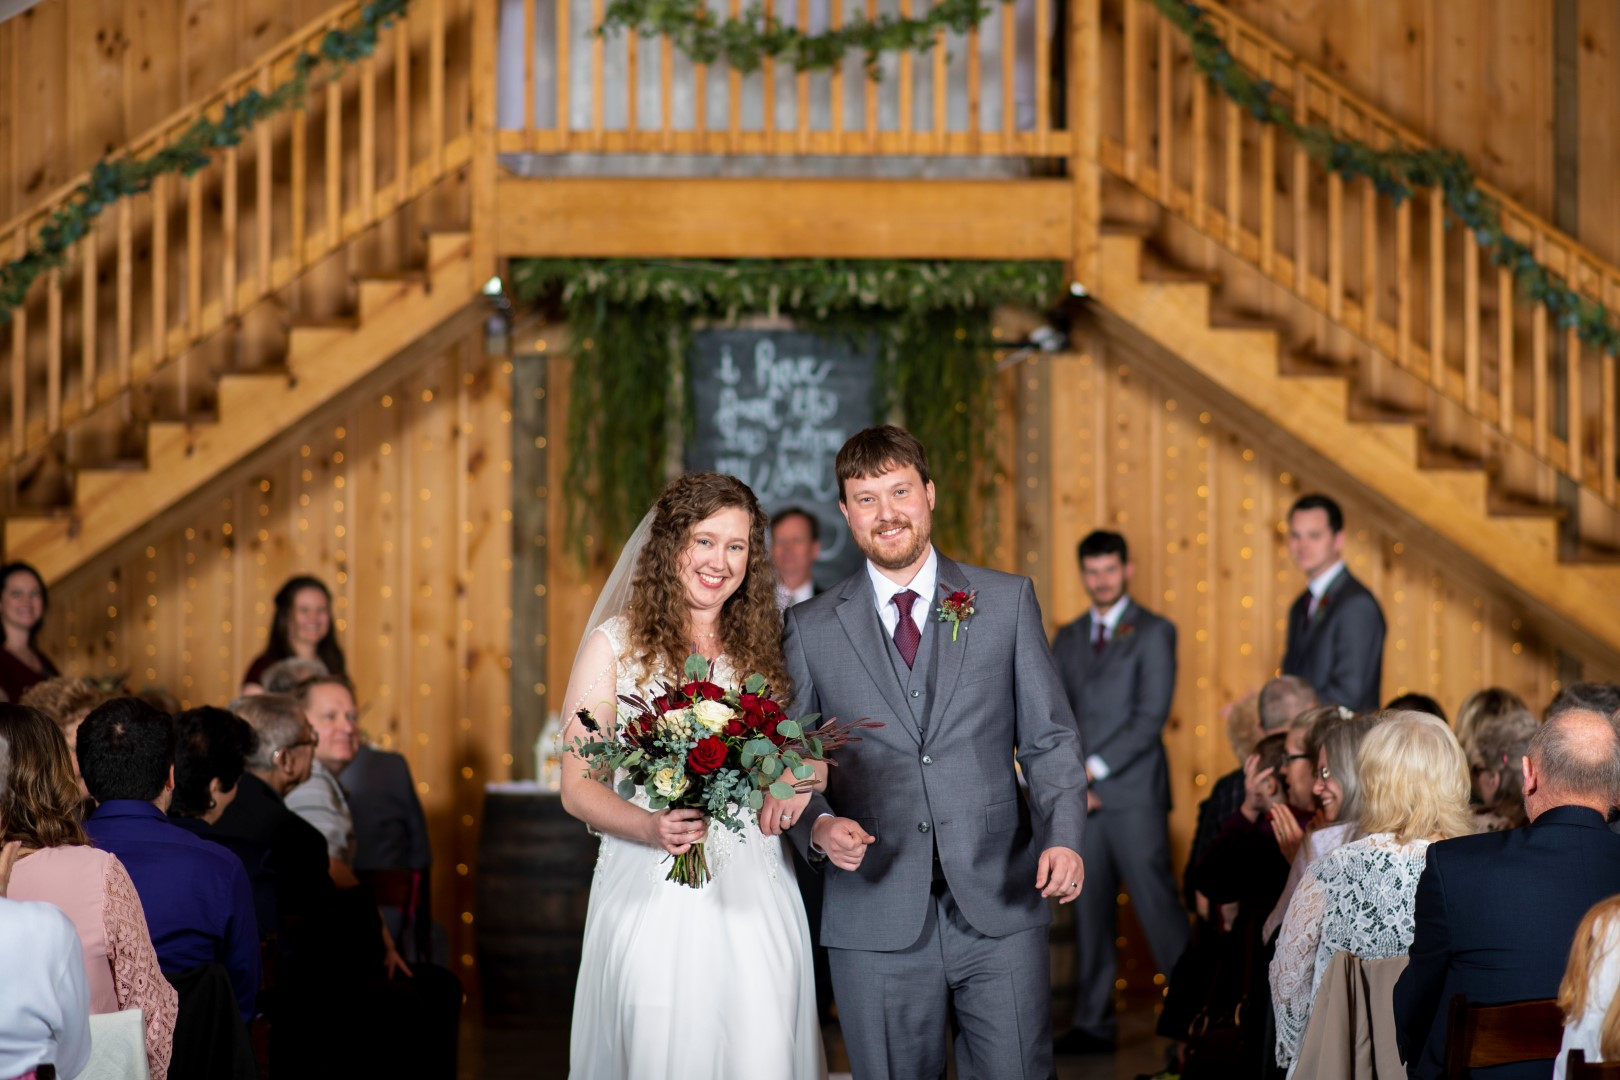 Bates_Roberts_Wedding_SneakPeek_23 (Large).jpg